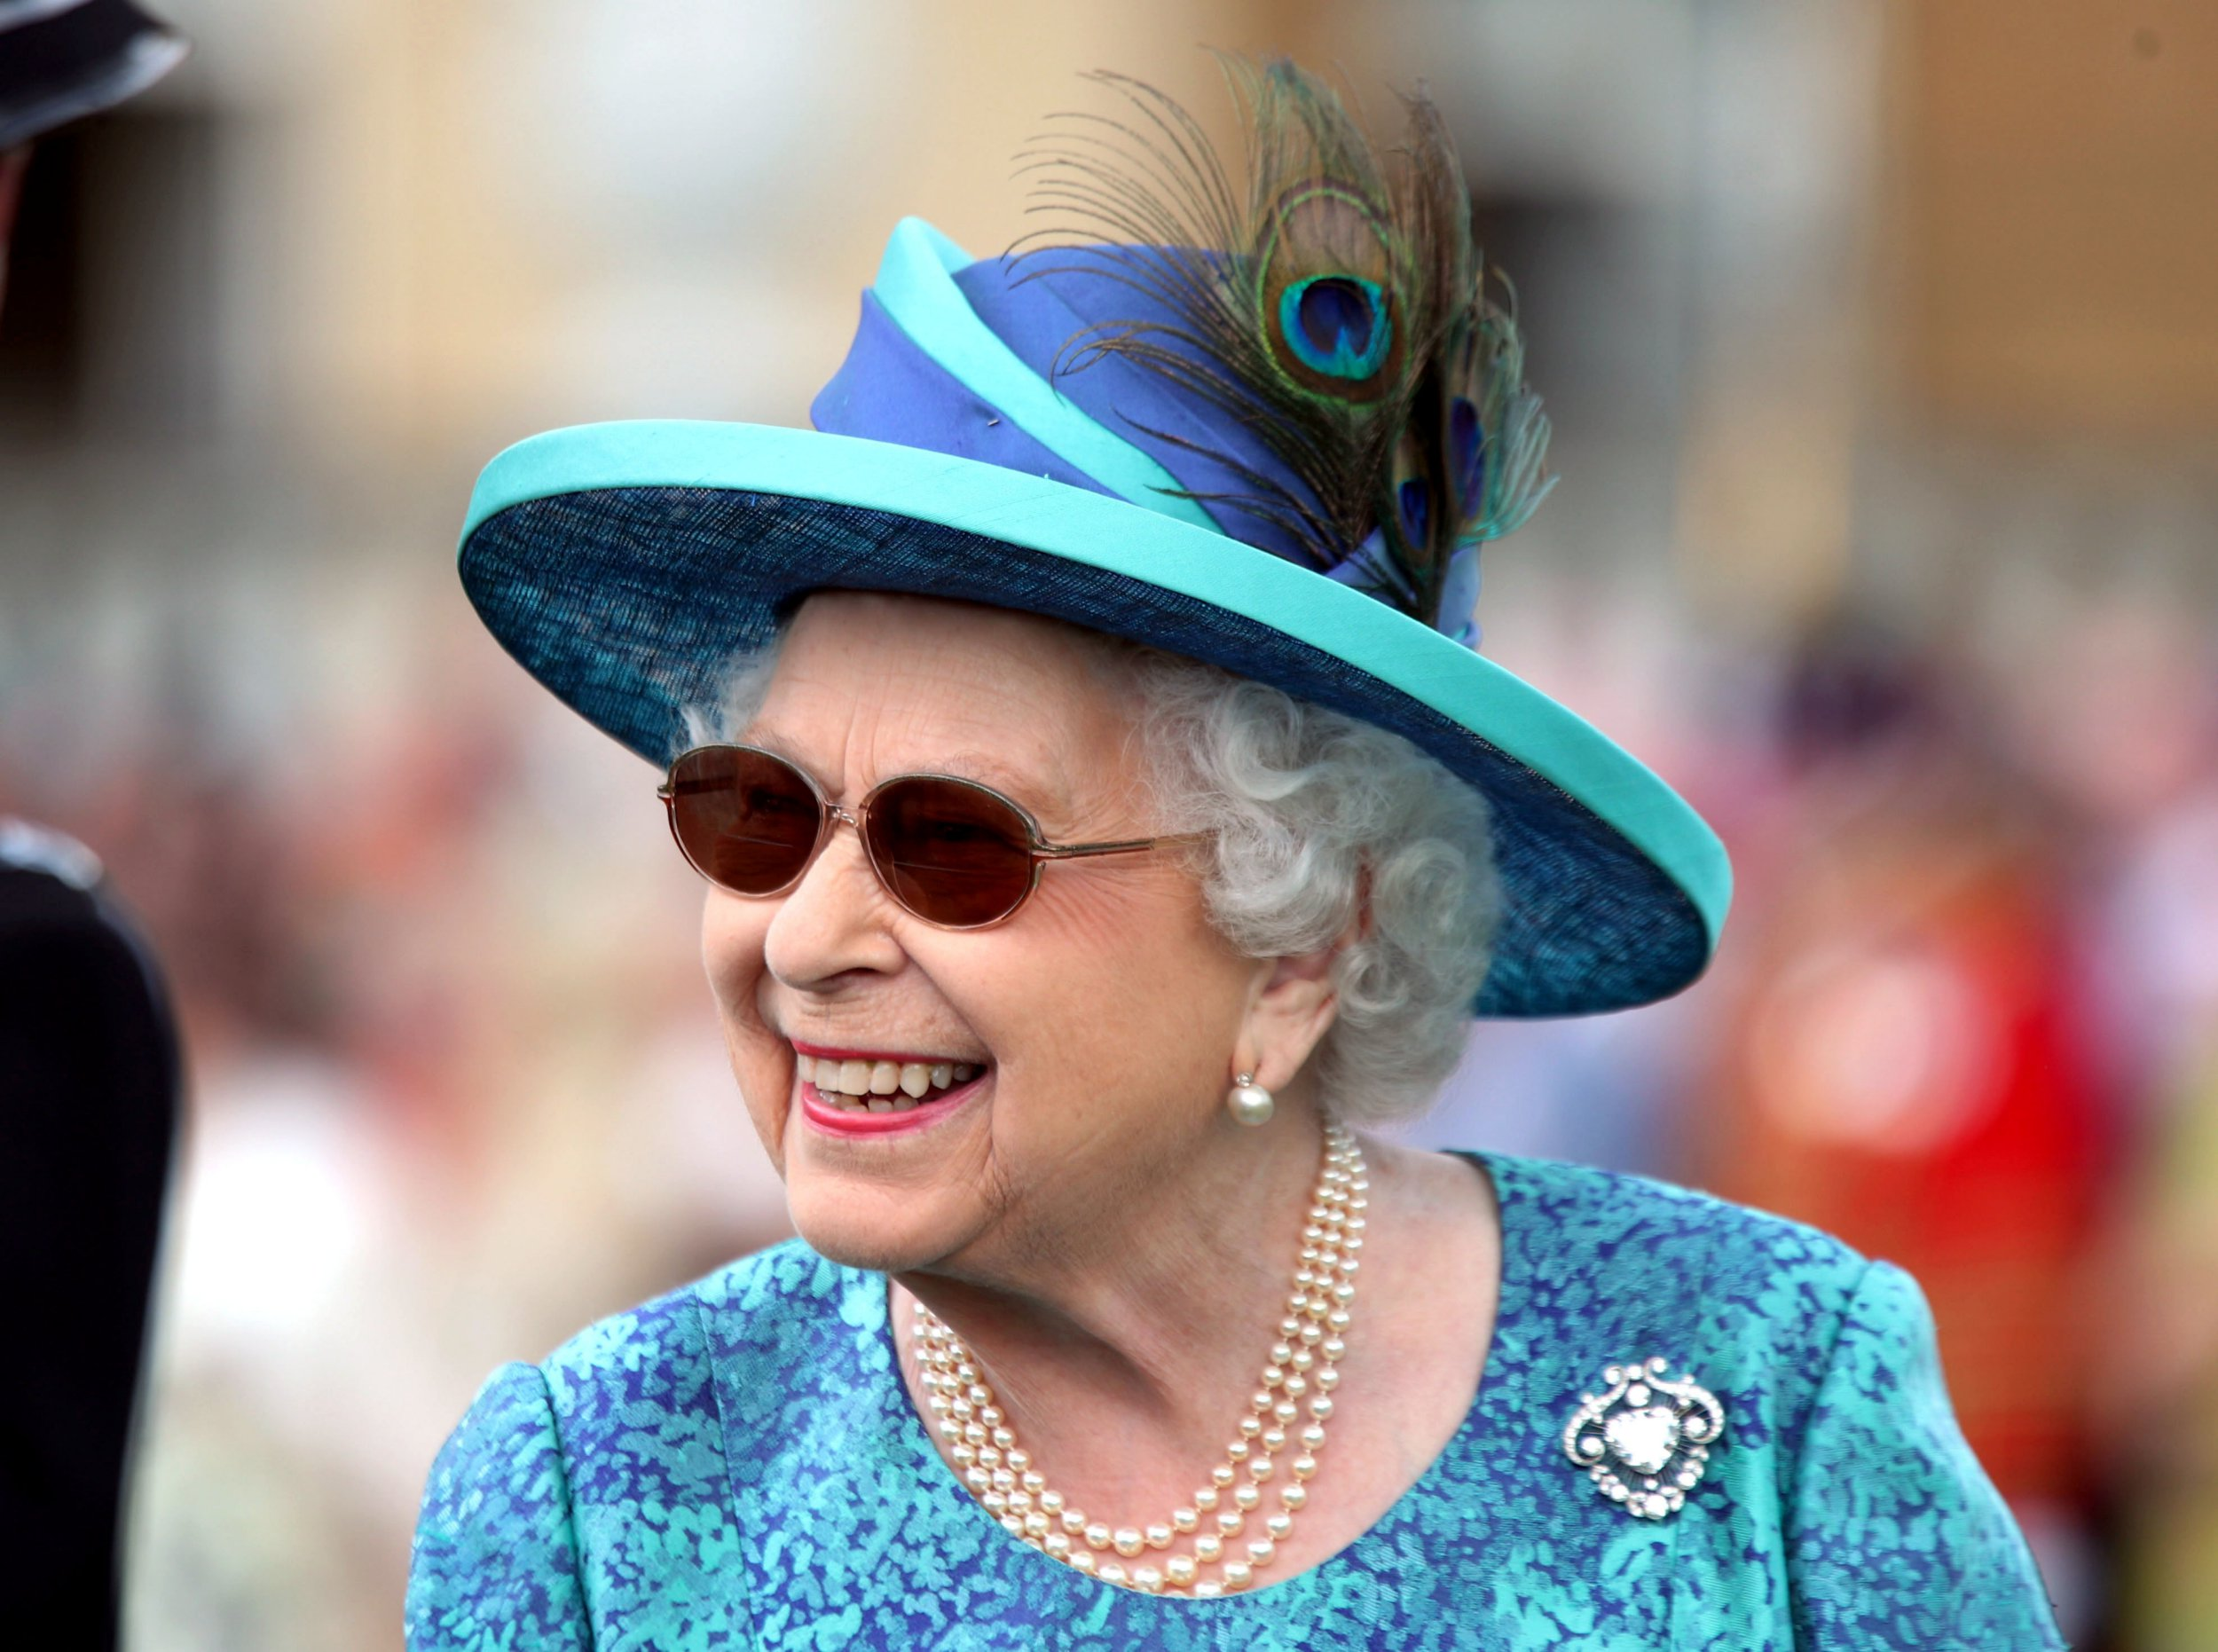 Queen Elizabeth II during a garden party at Buckingham Palace in London. PRESS ASSOCIATION Photo. Picture date: Thursday May 31, 2018. Photo credit should read: Yui Mok/PA Wire